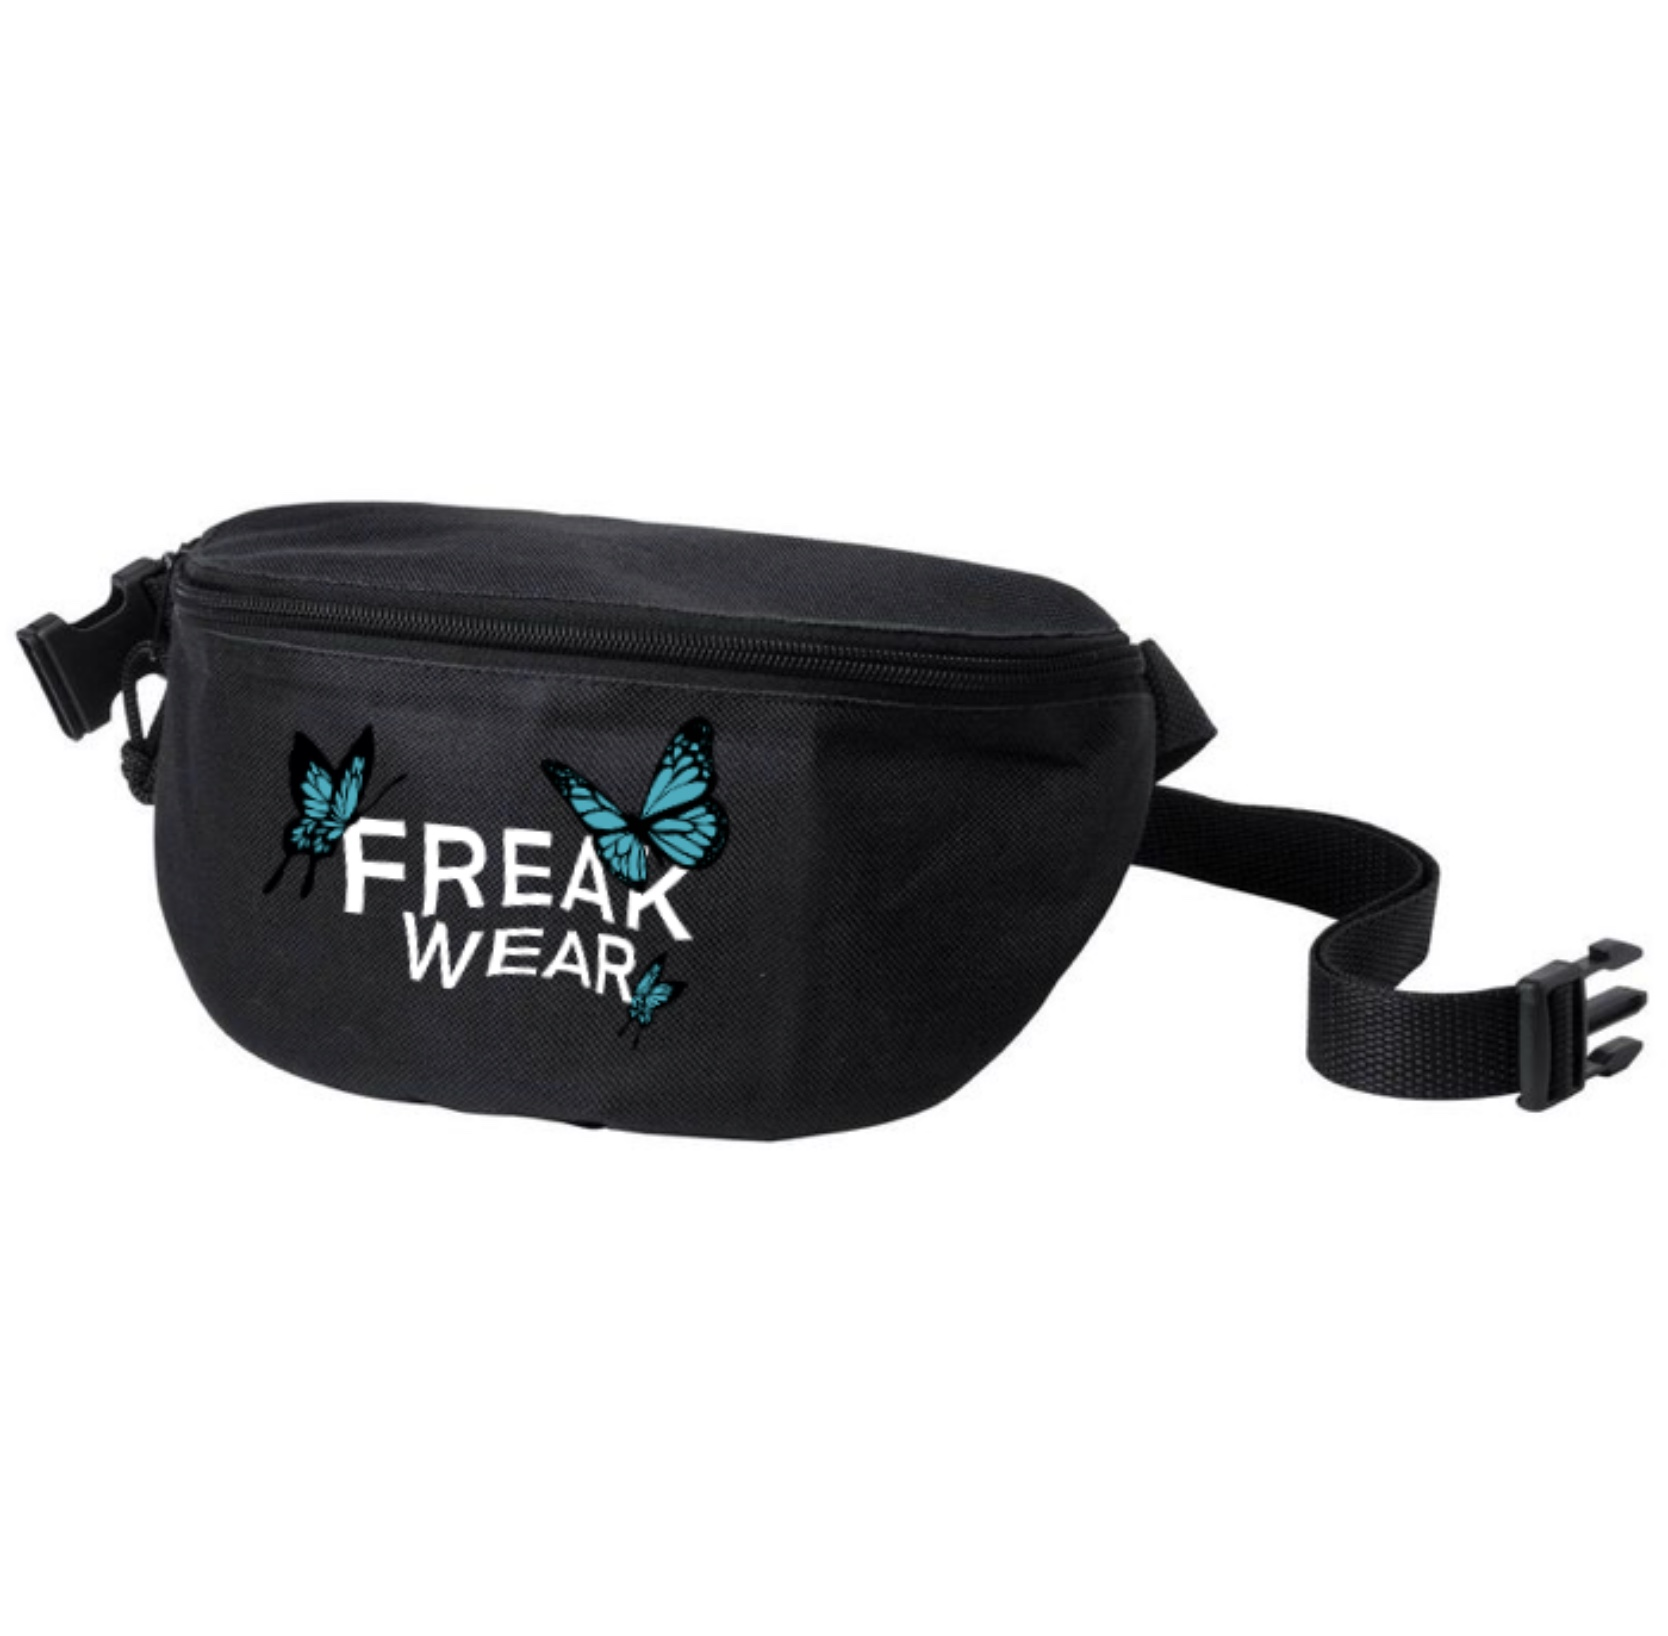 Ledvinka Freak Wear BL